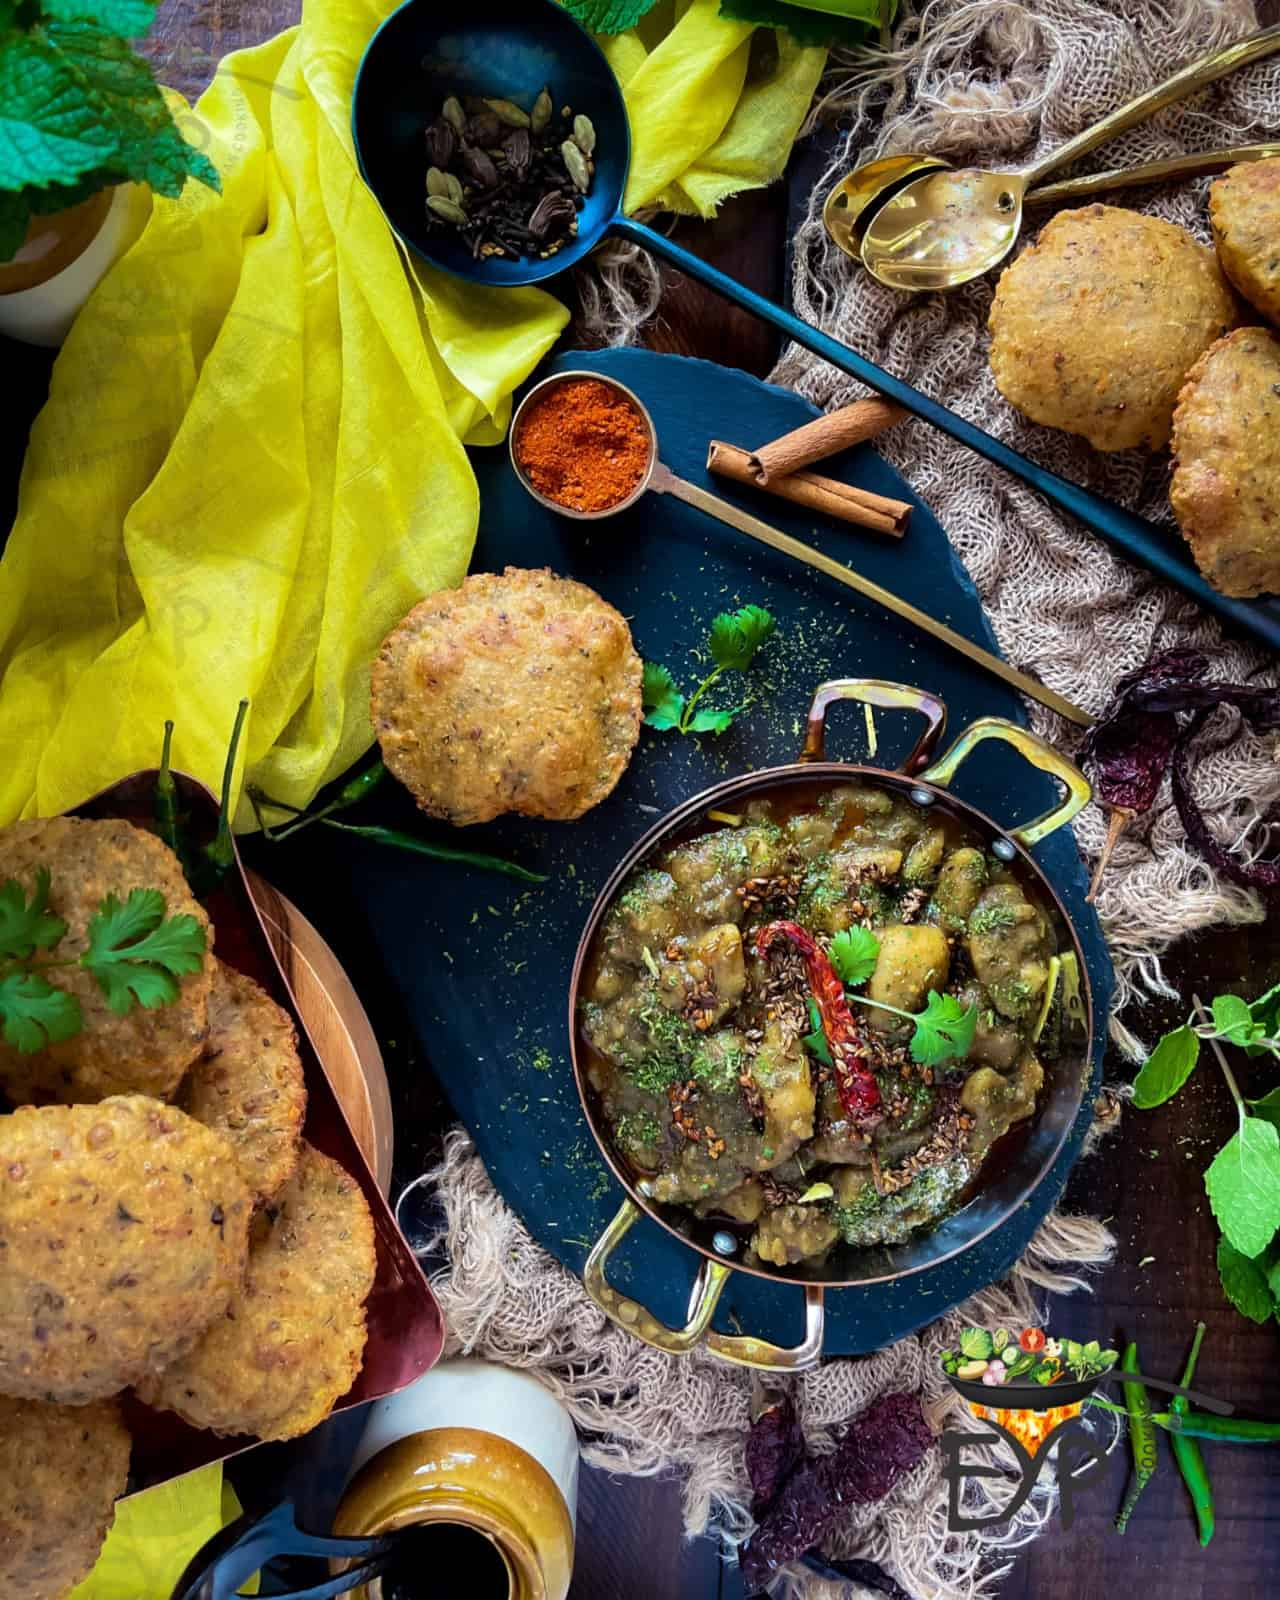 Dubki wale aloo spicy potato curry surved with bhedai (stuffed lentil deepfried bread)